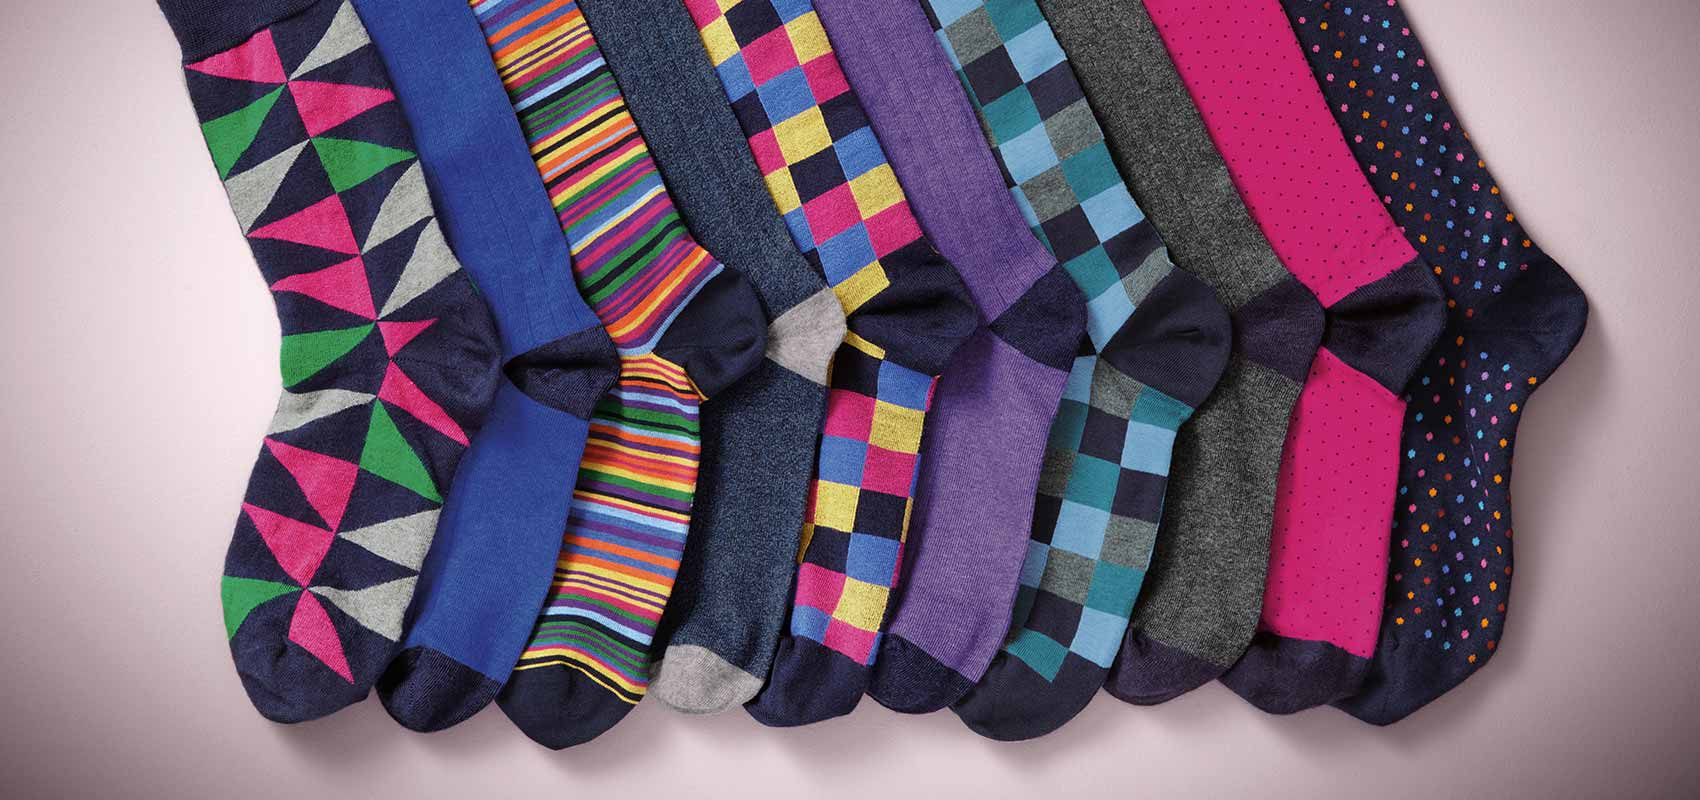 Charles Tyrwhitt men's socks and hankies